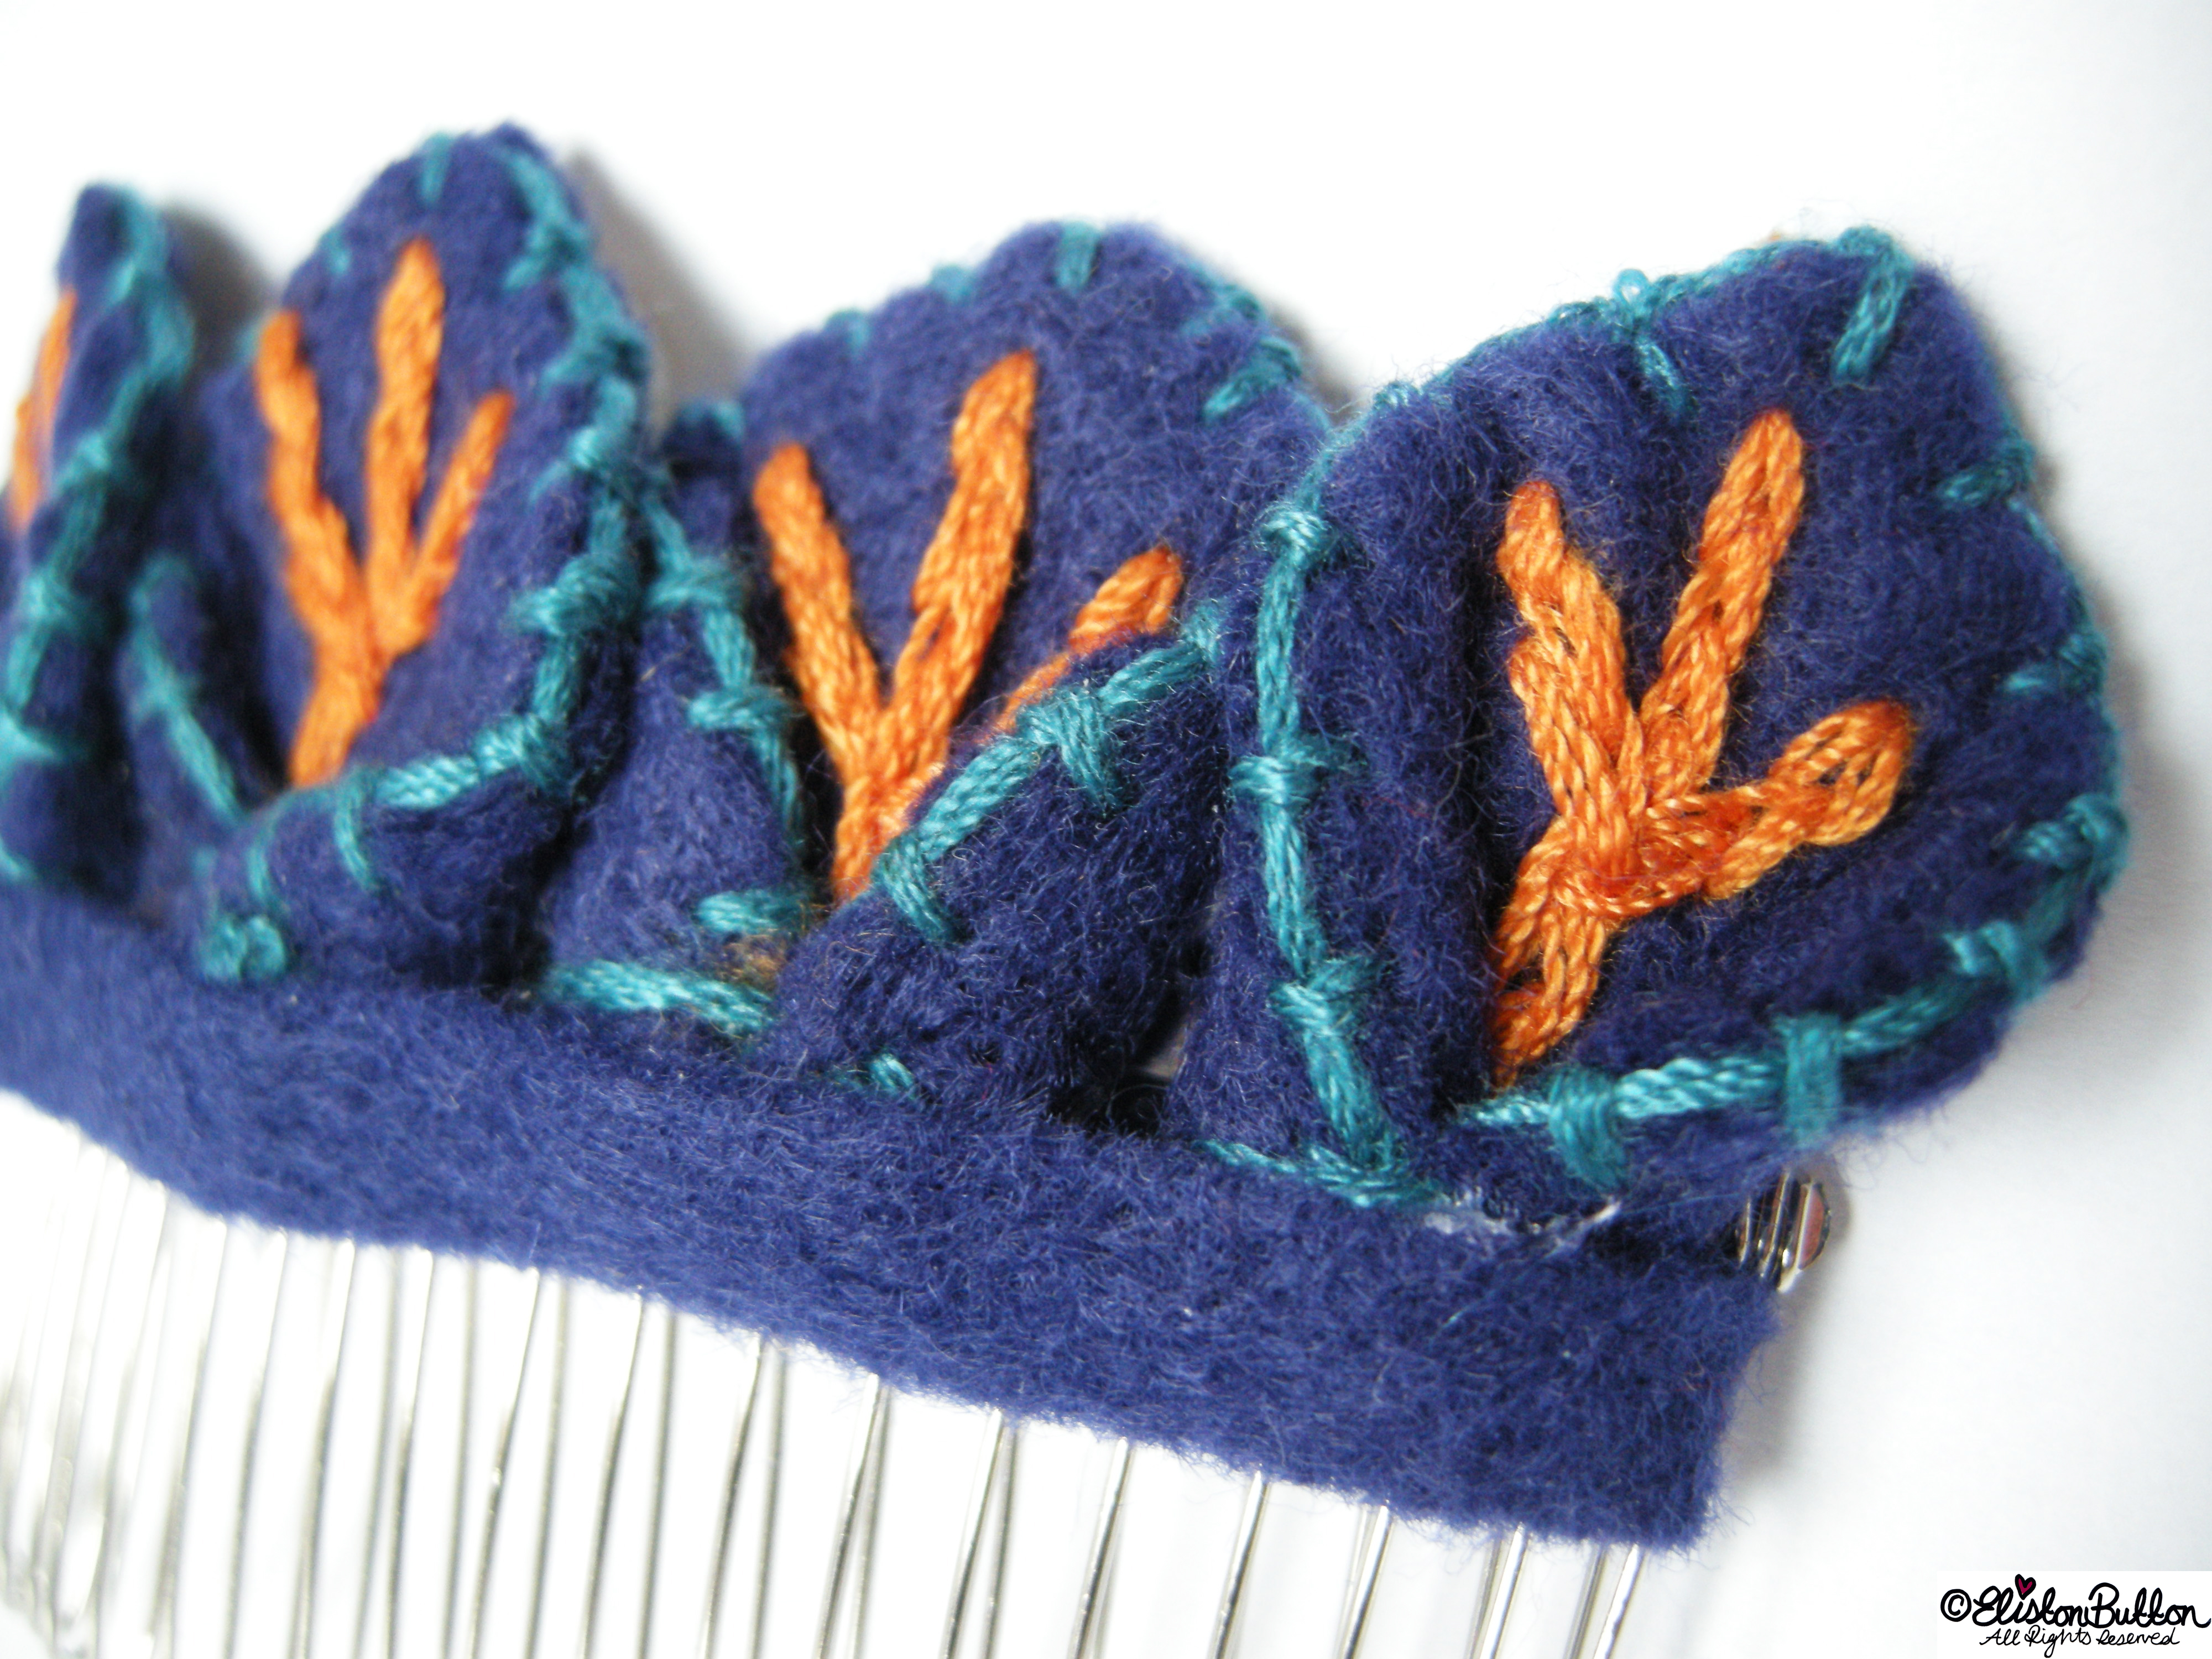 Blue, Orange and Turquoise Embroidered Felt Hair Comb Slide Petal Detail - Workspace Wednesday - Happy Little Petals at www.elistonbutton.com - Eliston Button - That Crafty Kid – Art, Design, Craft & Adventure.